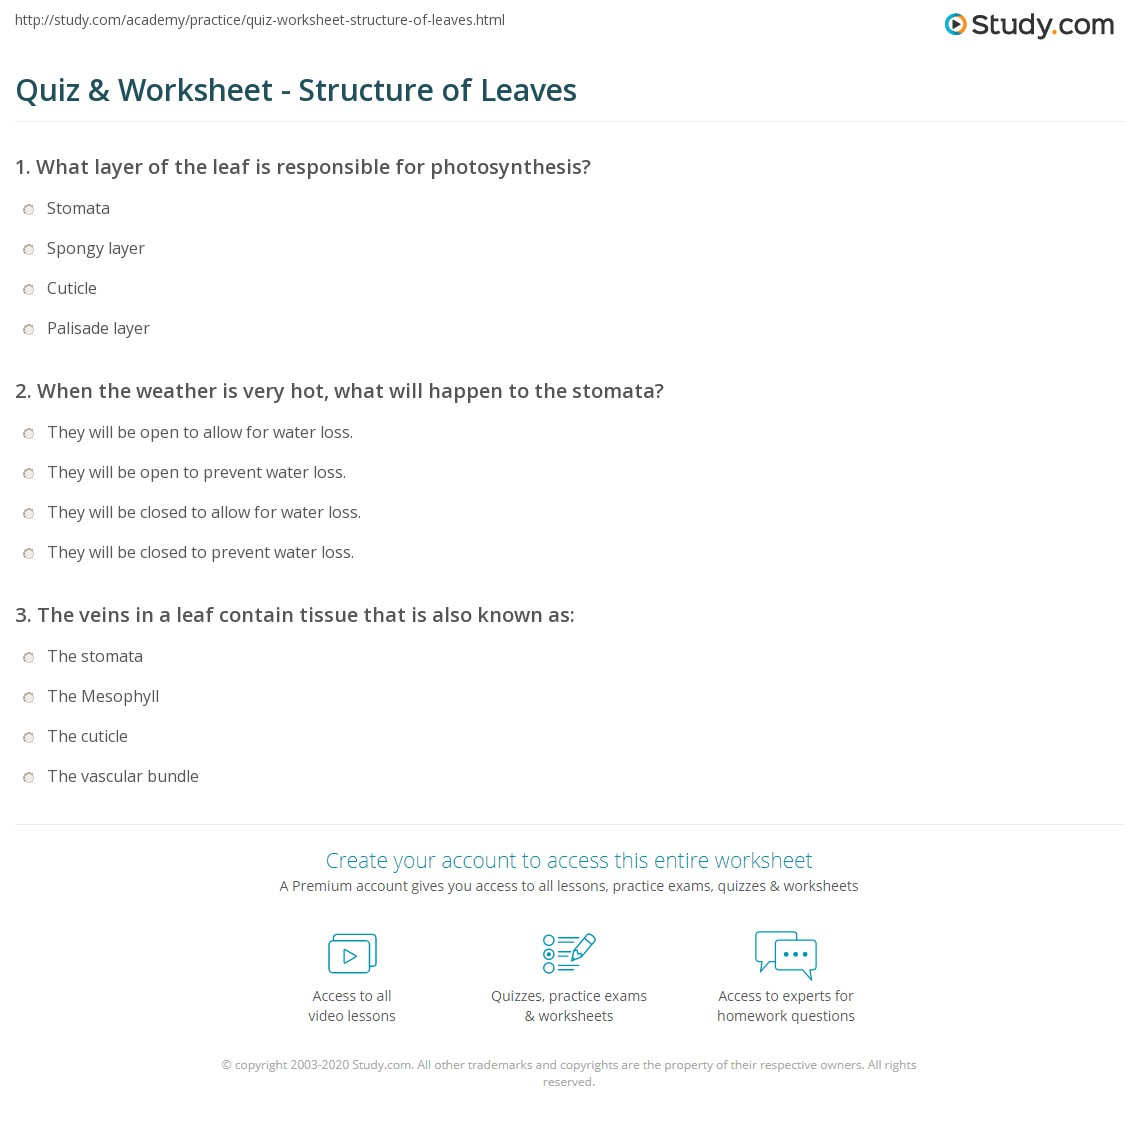 worksheet Photosynthesis Diagrams Worksheet Answers quiz worksheet structure of leaves study com print the epidermis palisade and spongy layers worksheet